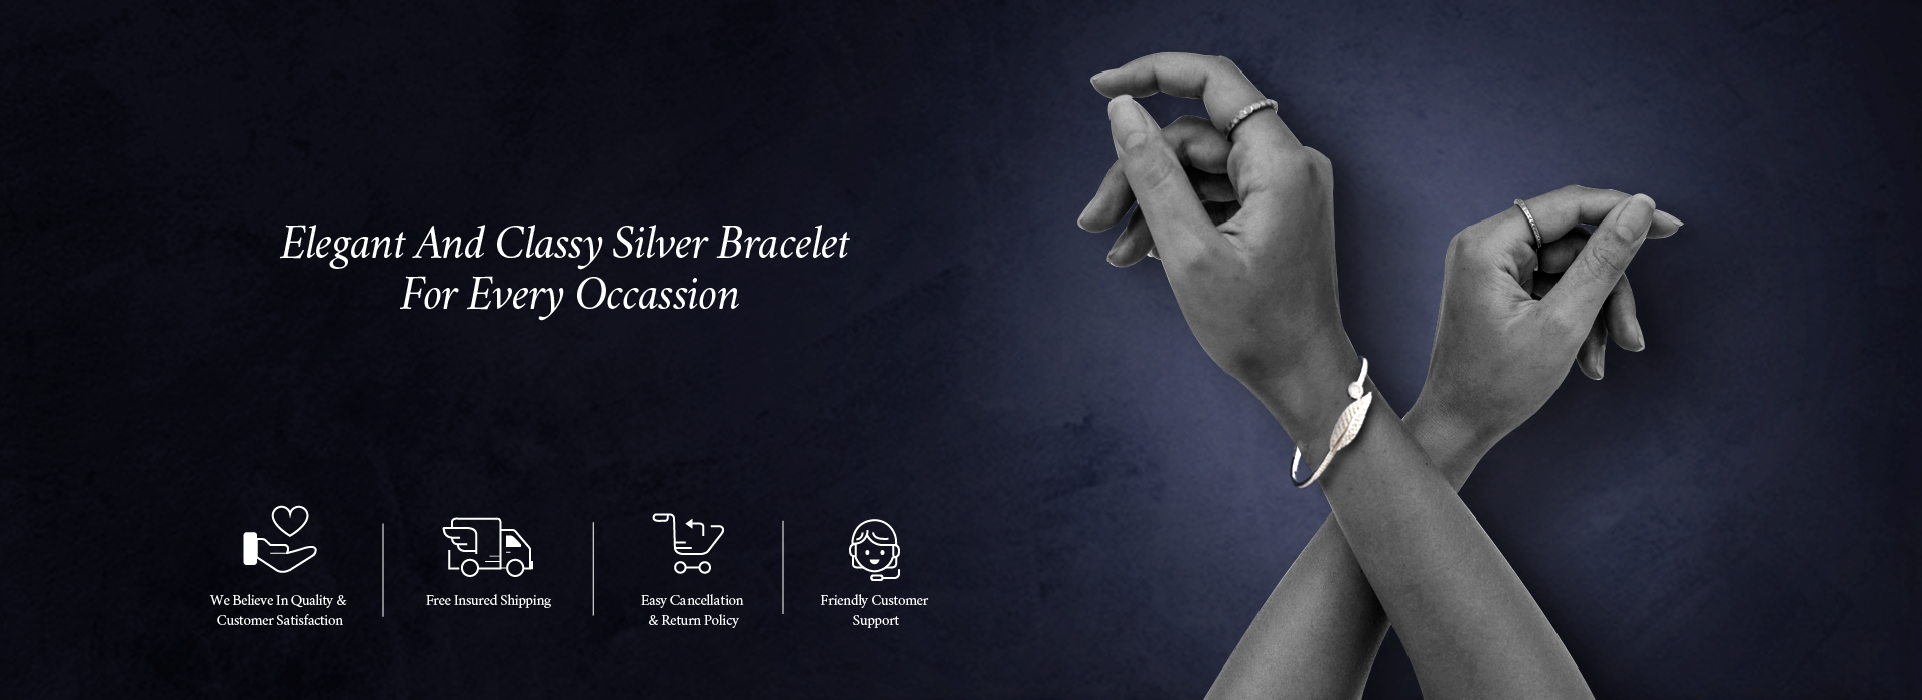 Elegant and Classy Silver Bracelet for Every Occasion.